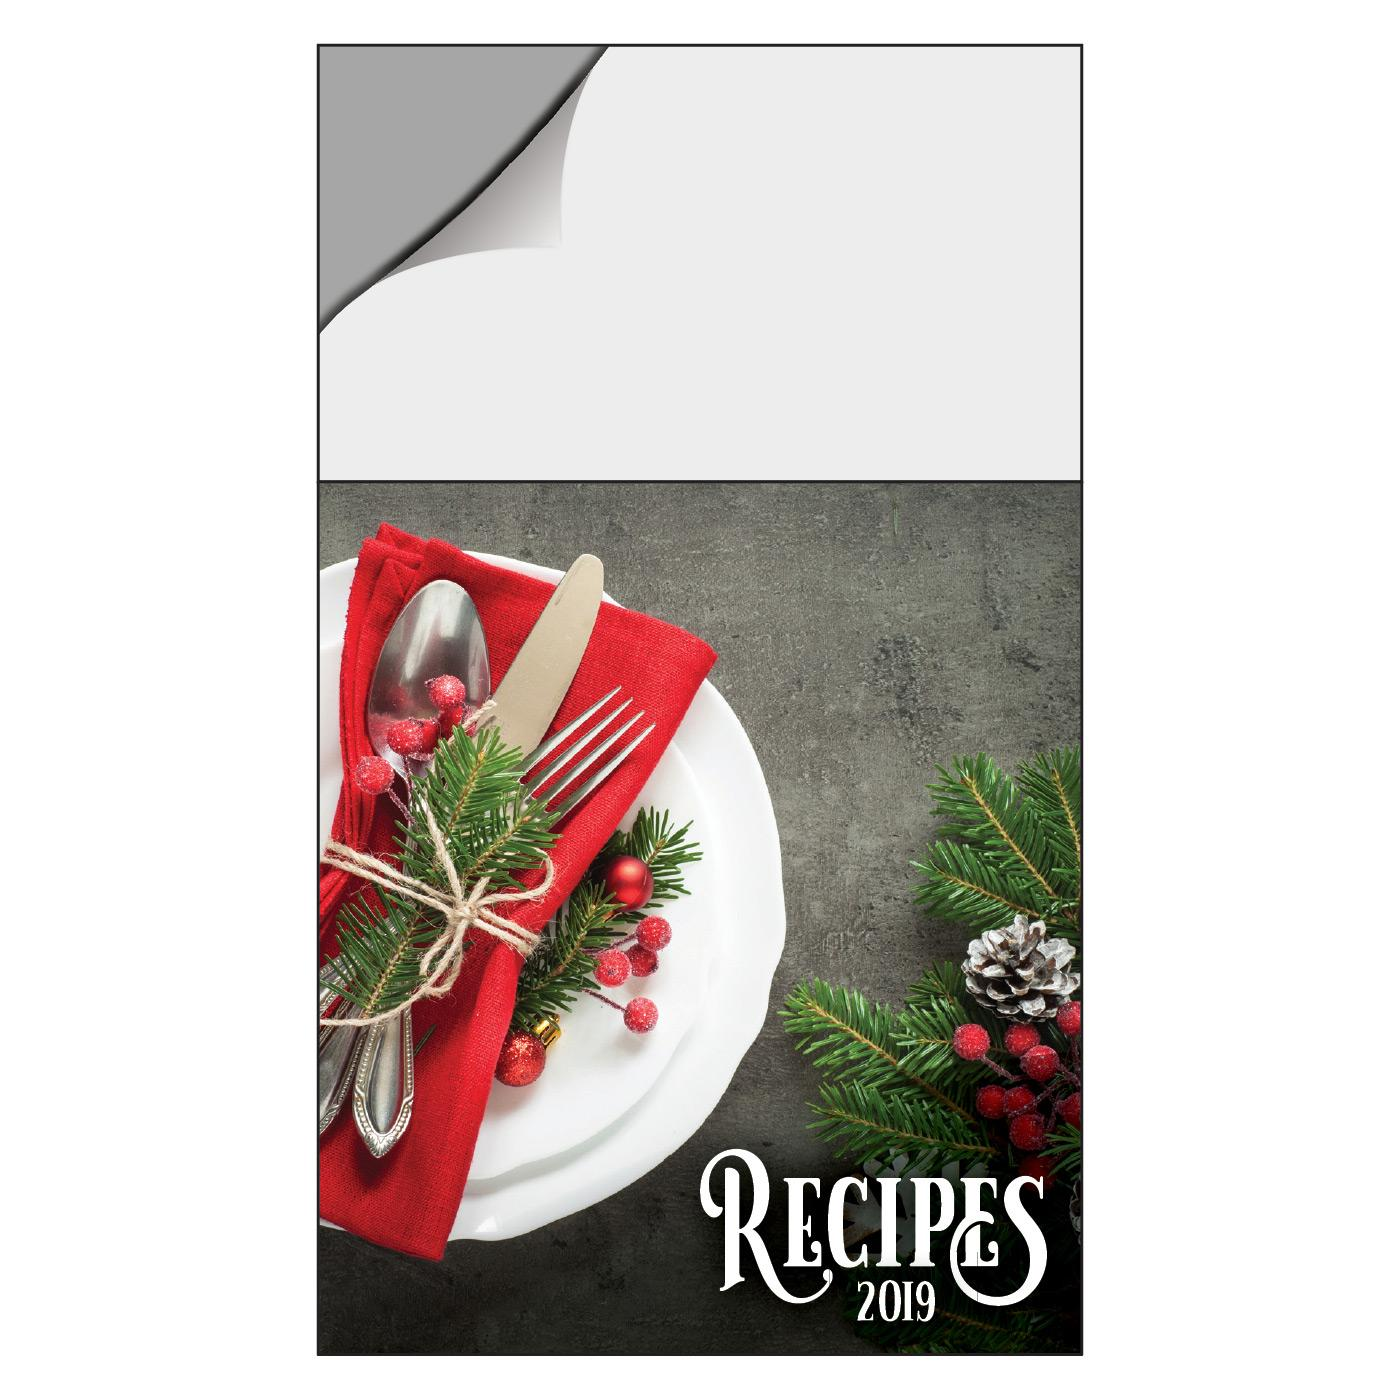 Low-cost holiday marketing gift